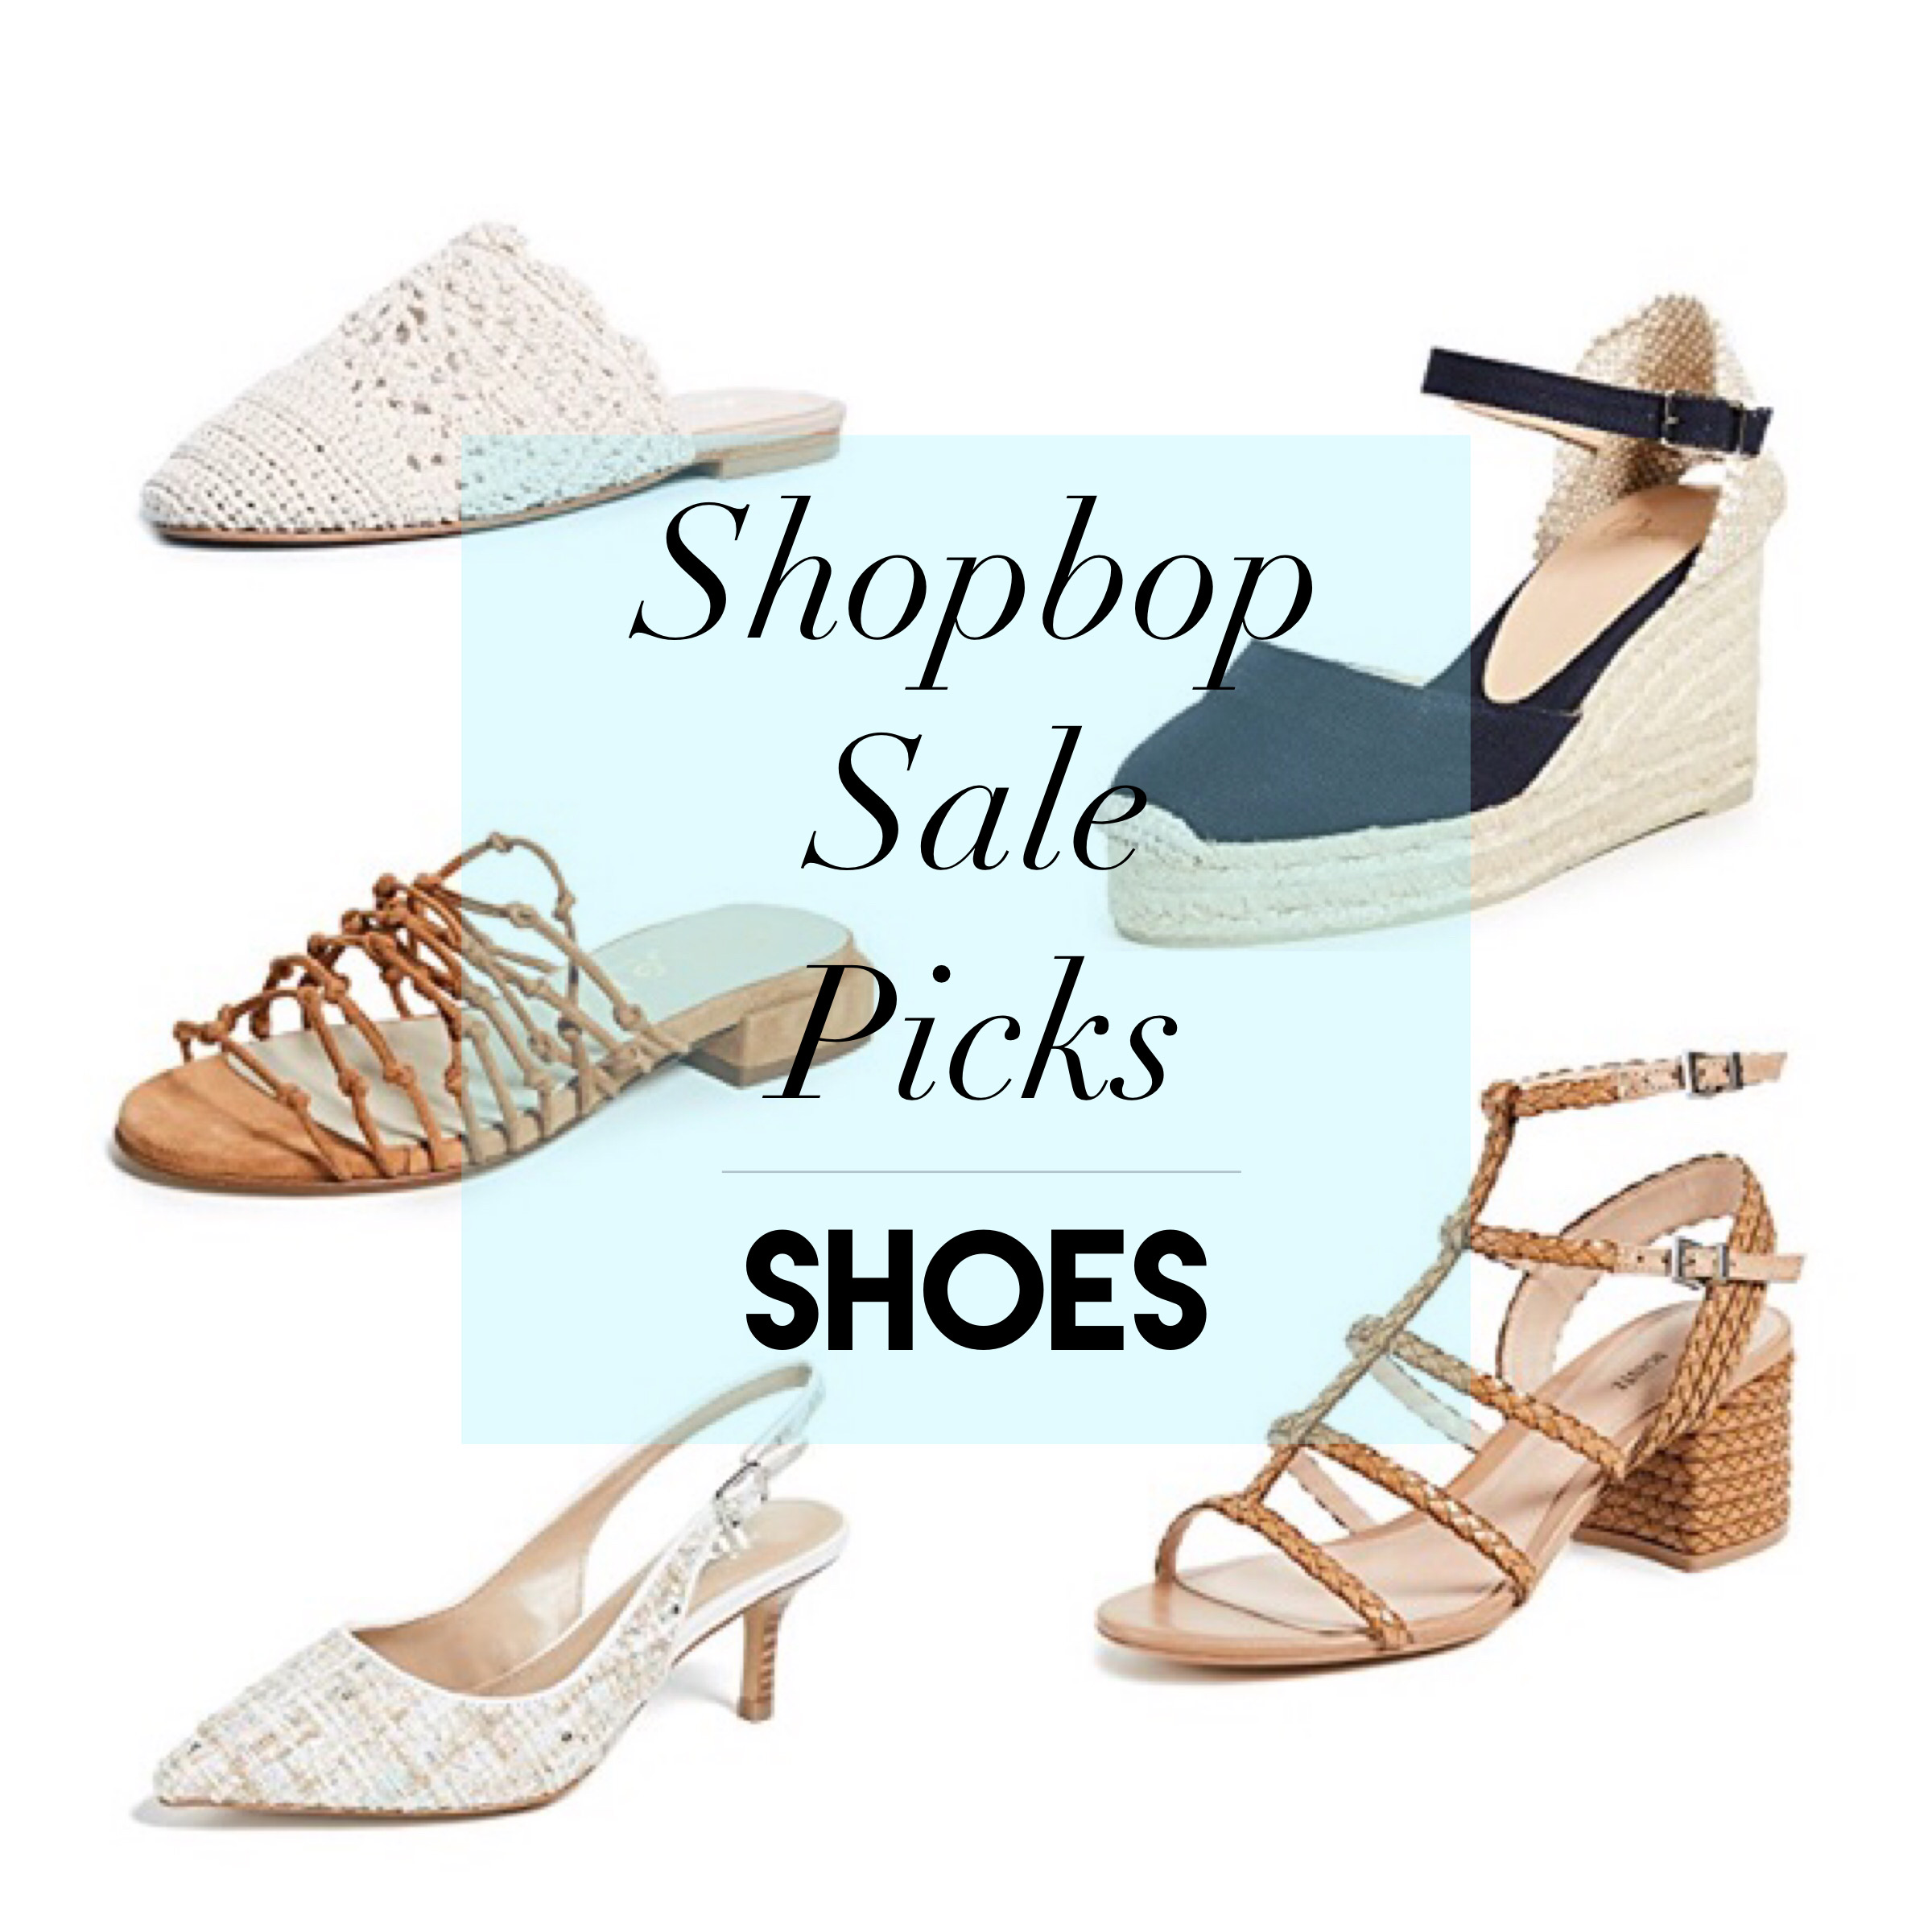 shopbop sale shoes